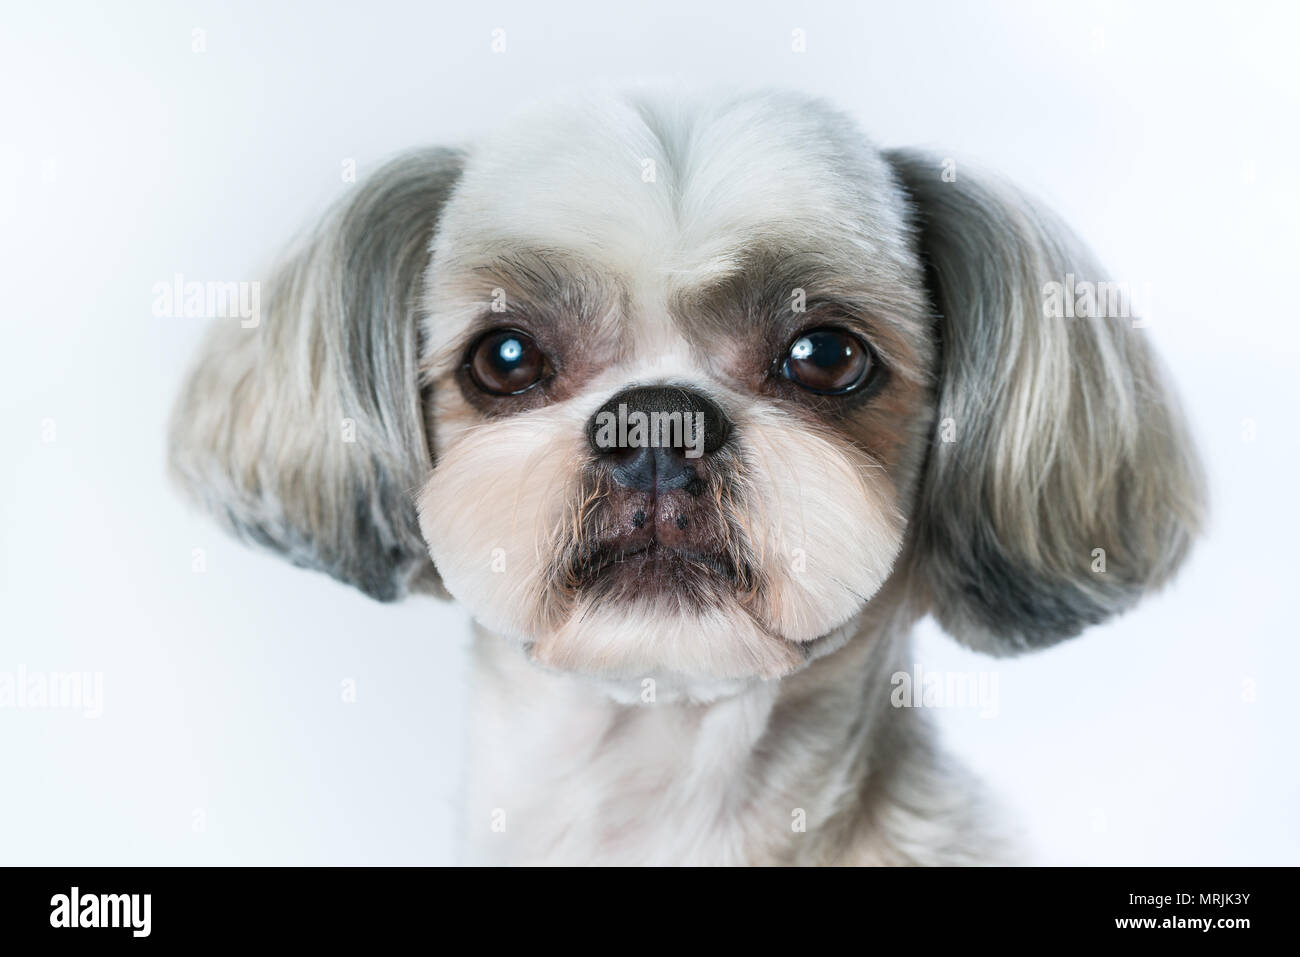 Shih Tzu Dog With Short Hair After Grooming Portrait On Bright